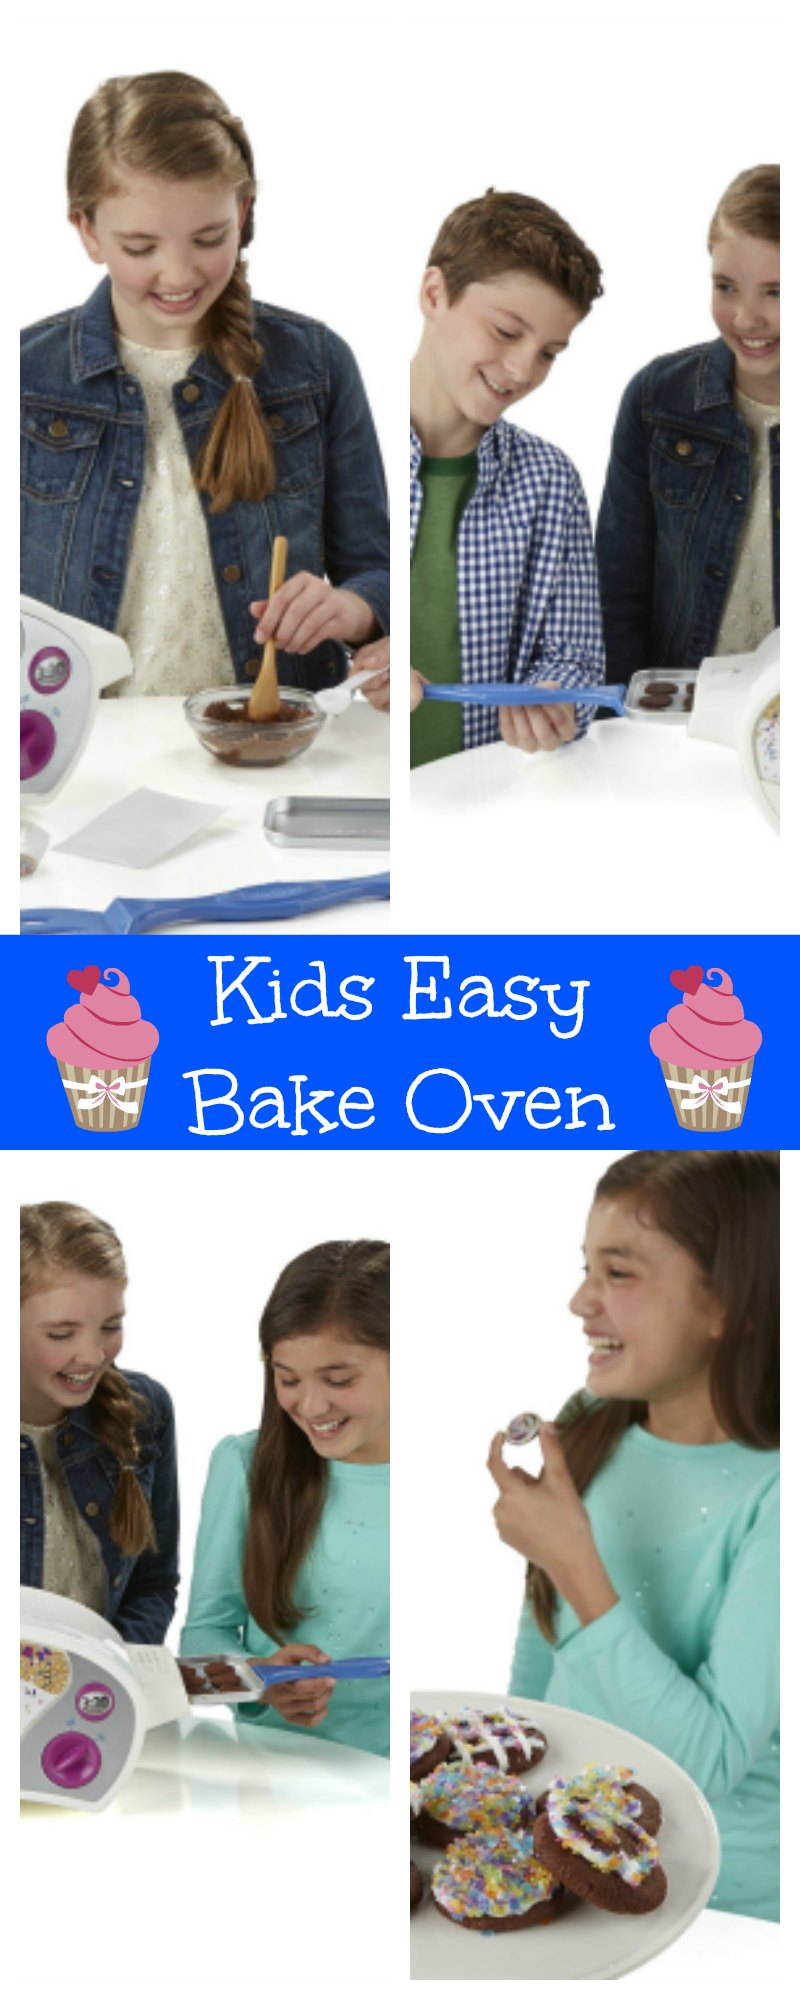 Kids Easy Bake Oven